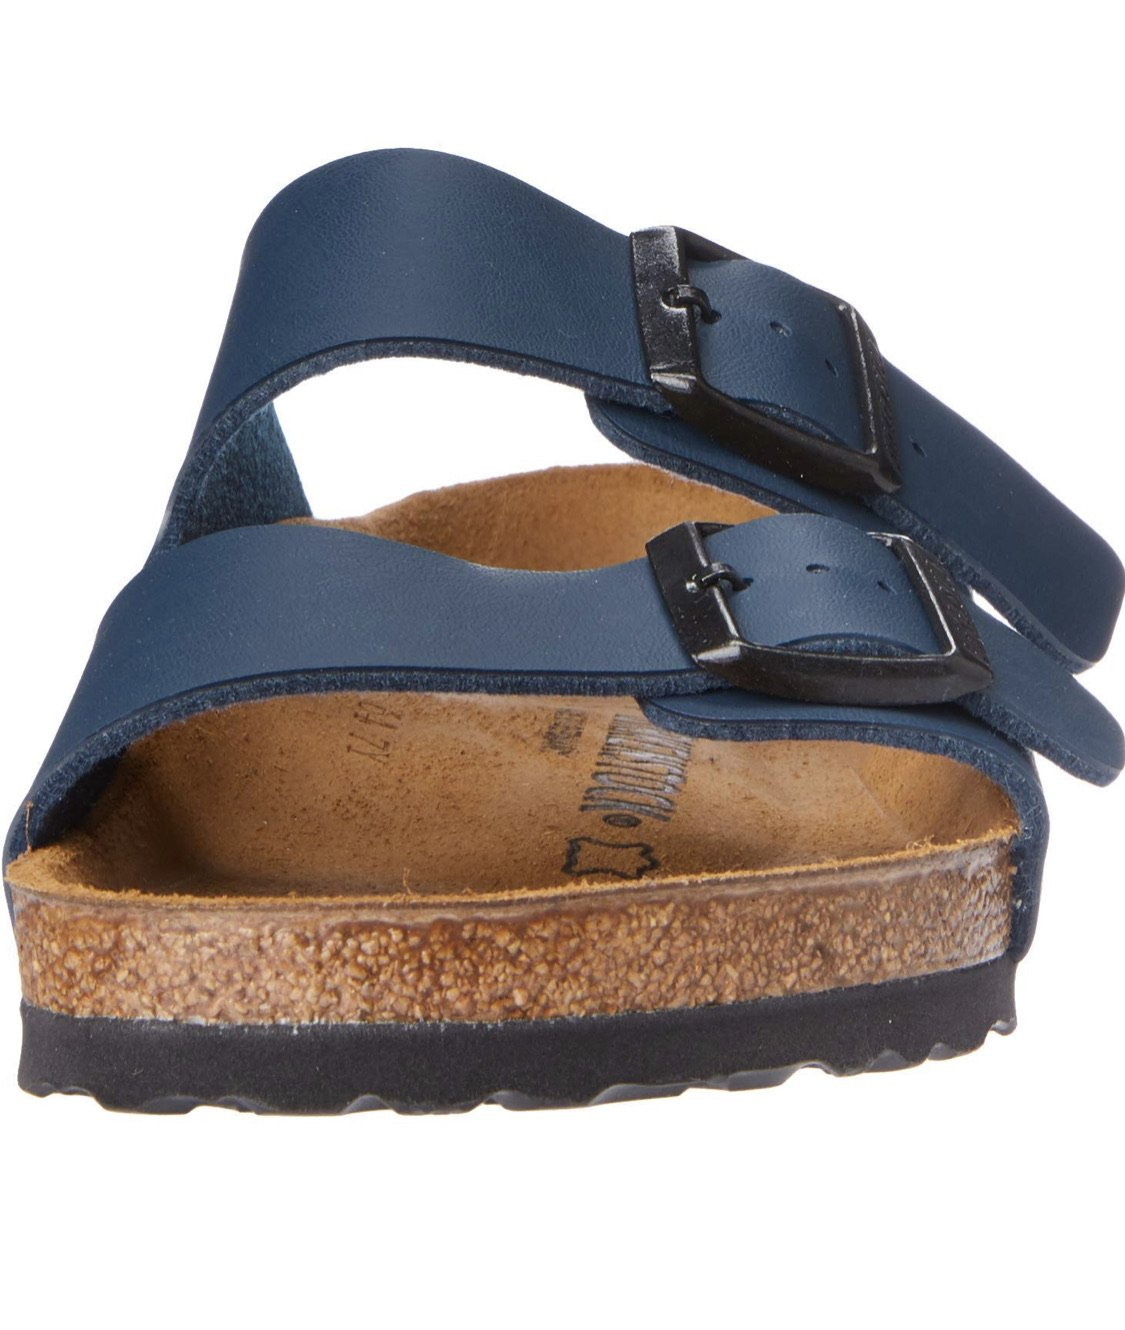 Arizona Smooth Leather in Blue (Classic Footbed), Sandals, Birkenstock, Milu James St